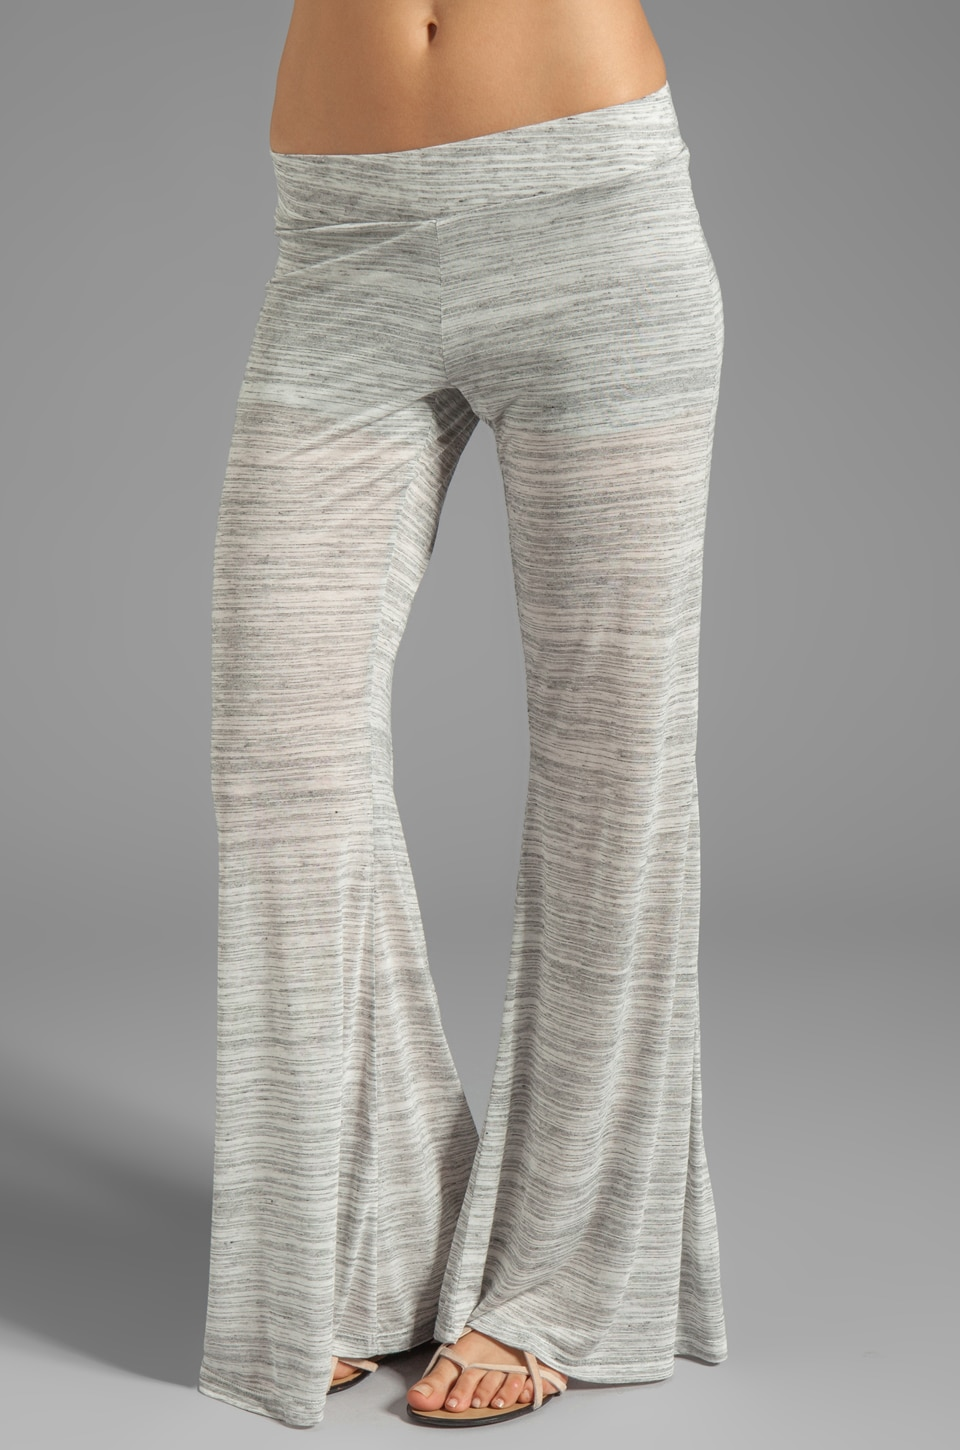 Blue Life Classic Bell Pant in Stone